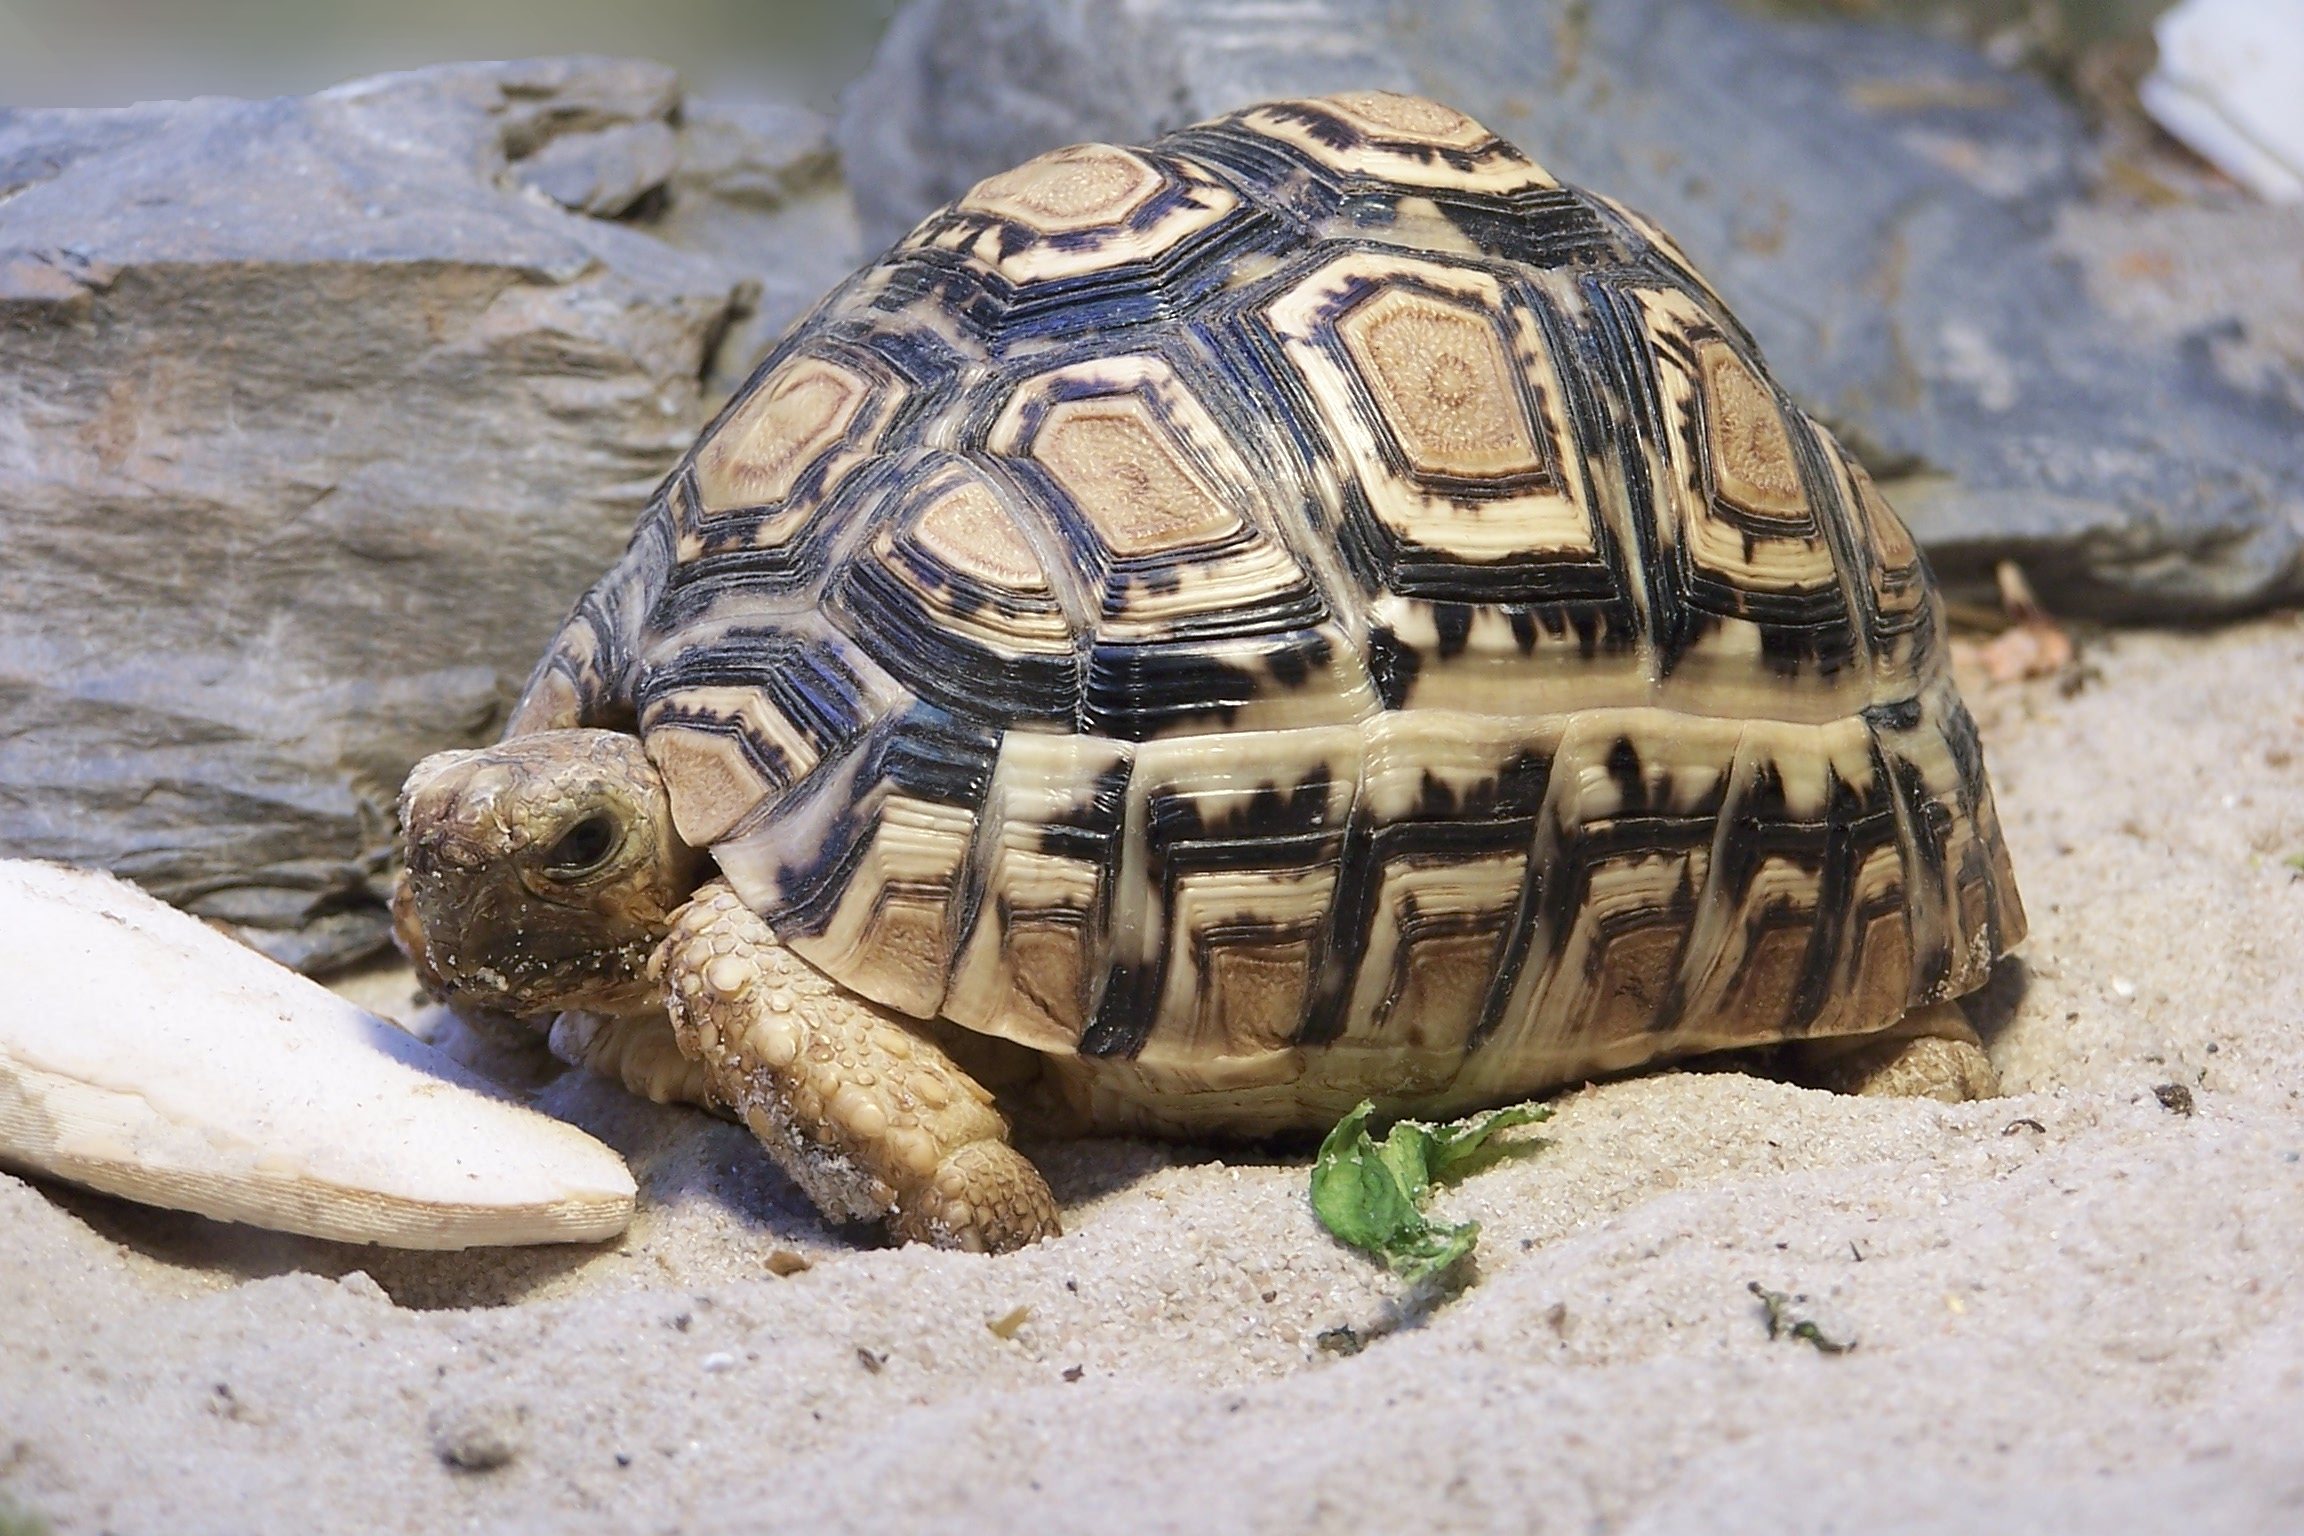 leopoard tortoise one of the Little Five of Africa